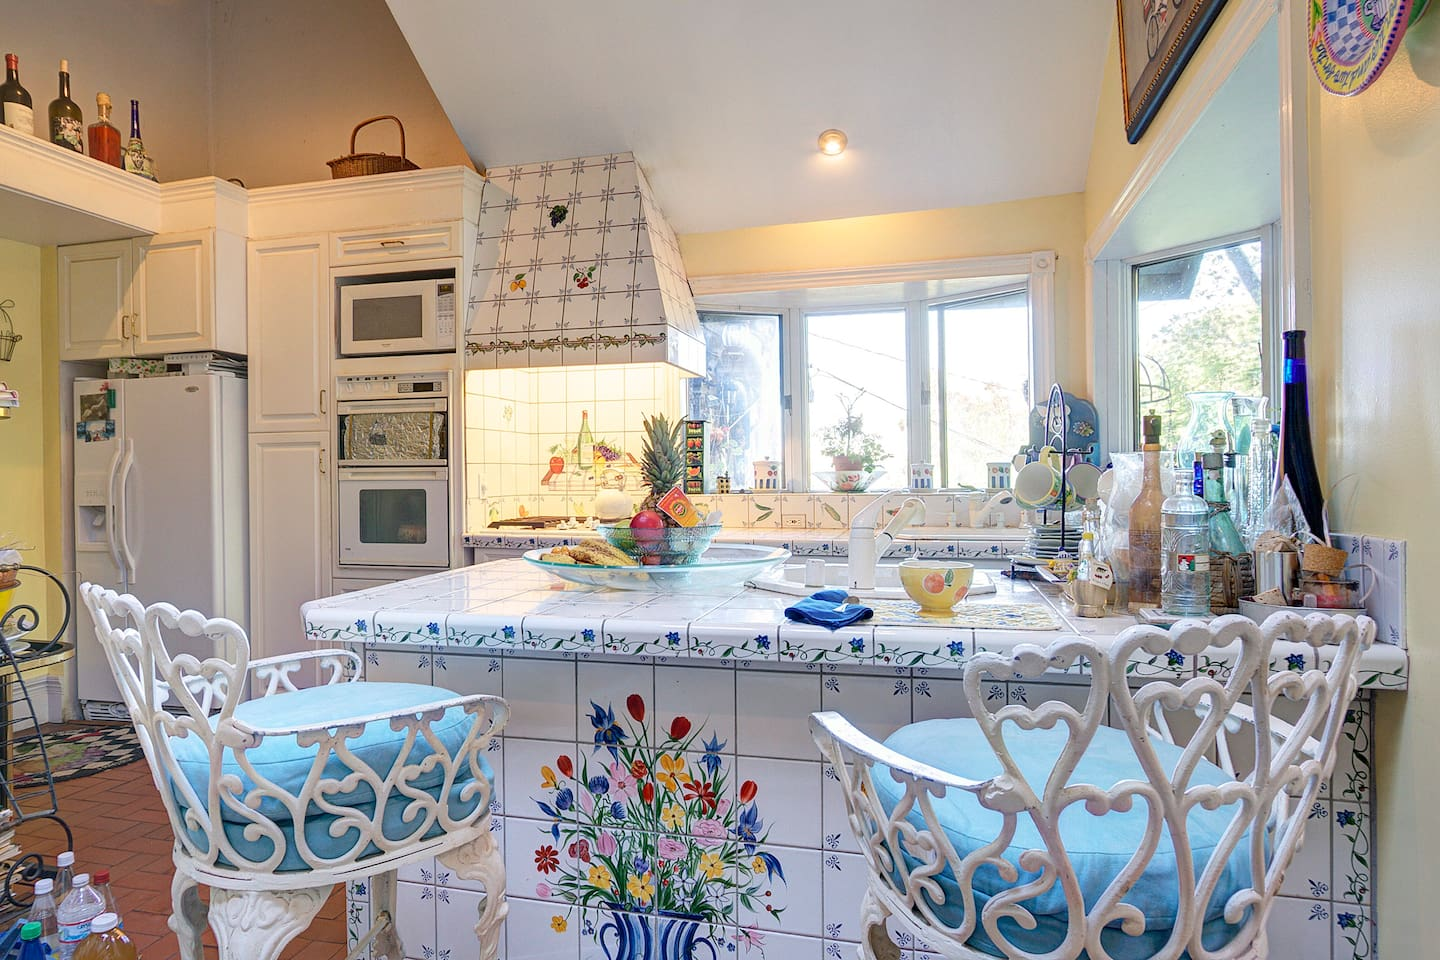 Italian tiled kitchen overlooking the bay